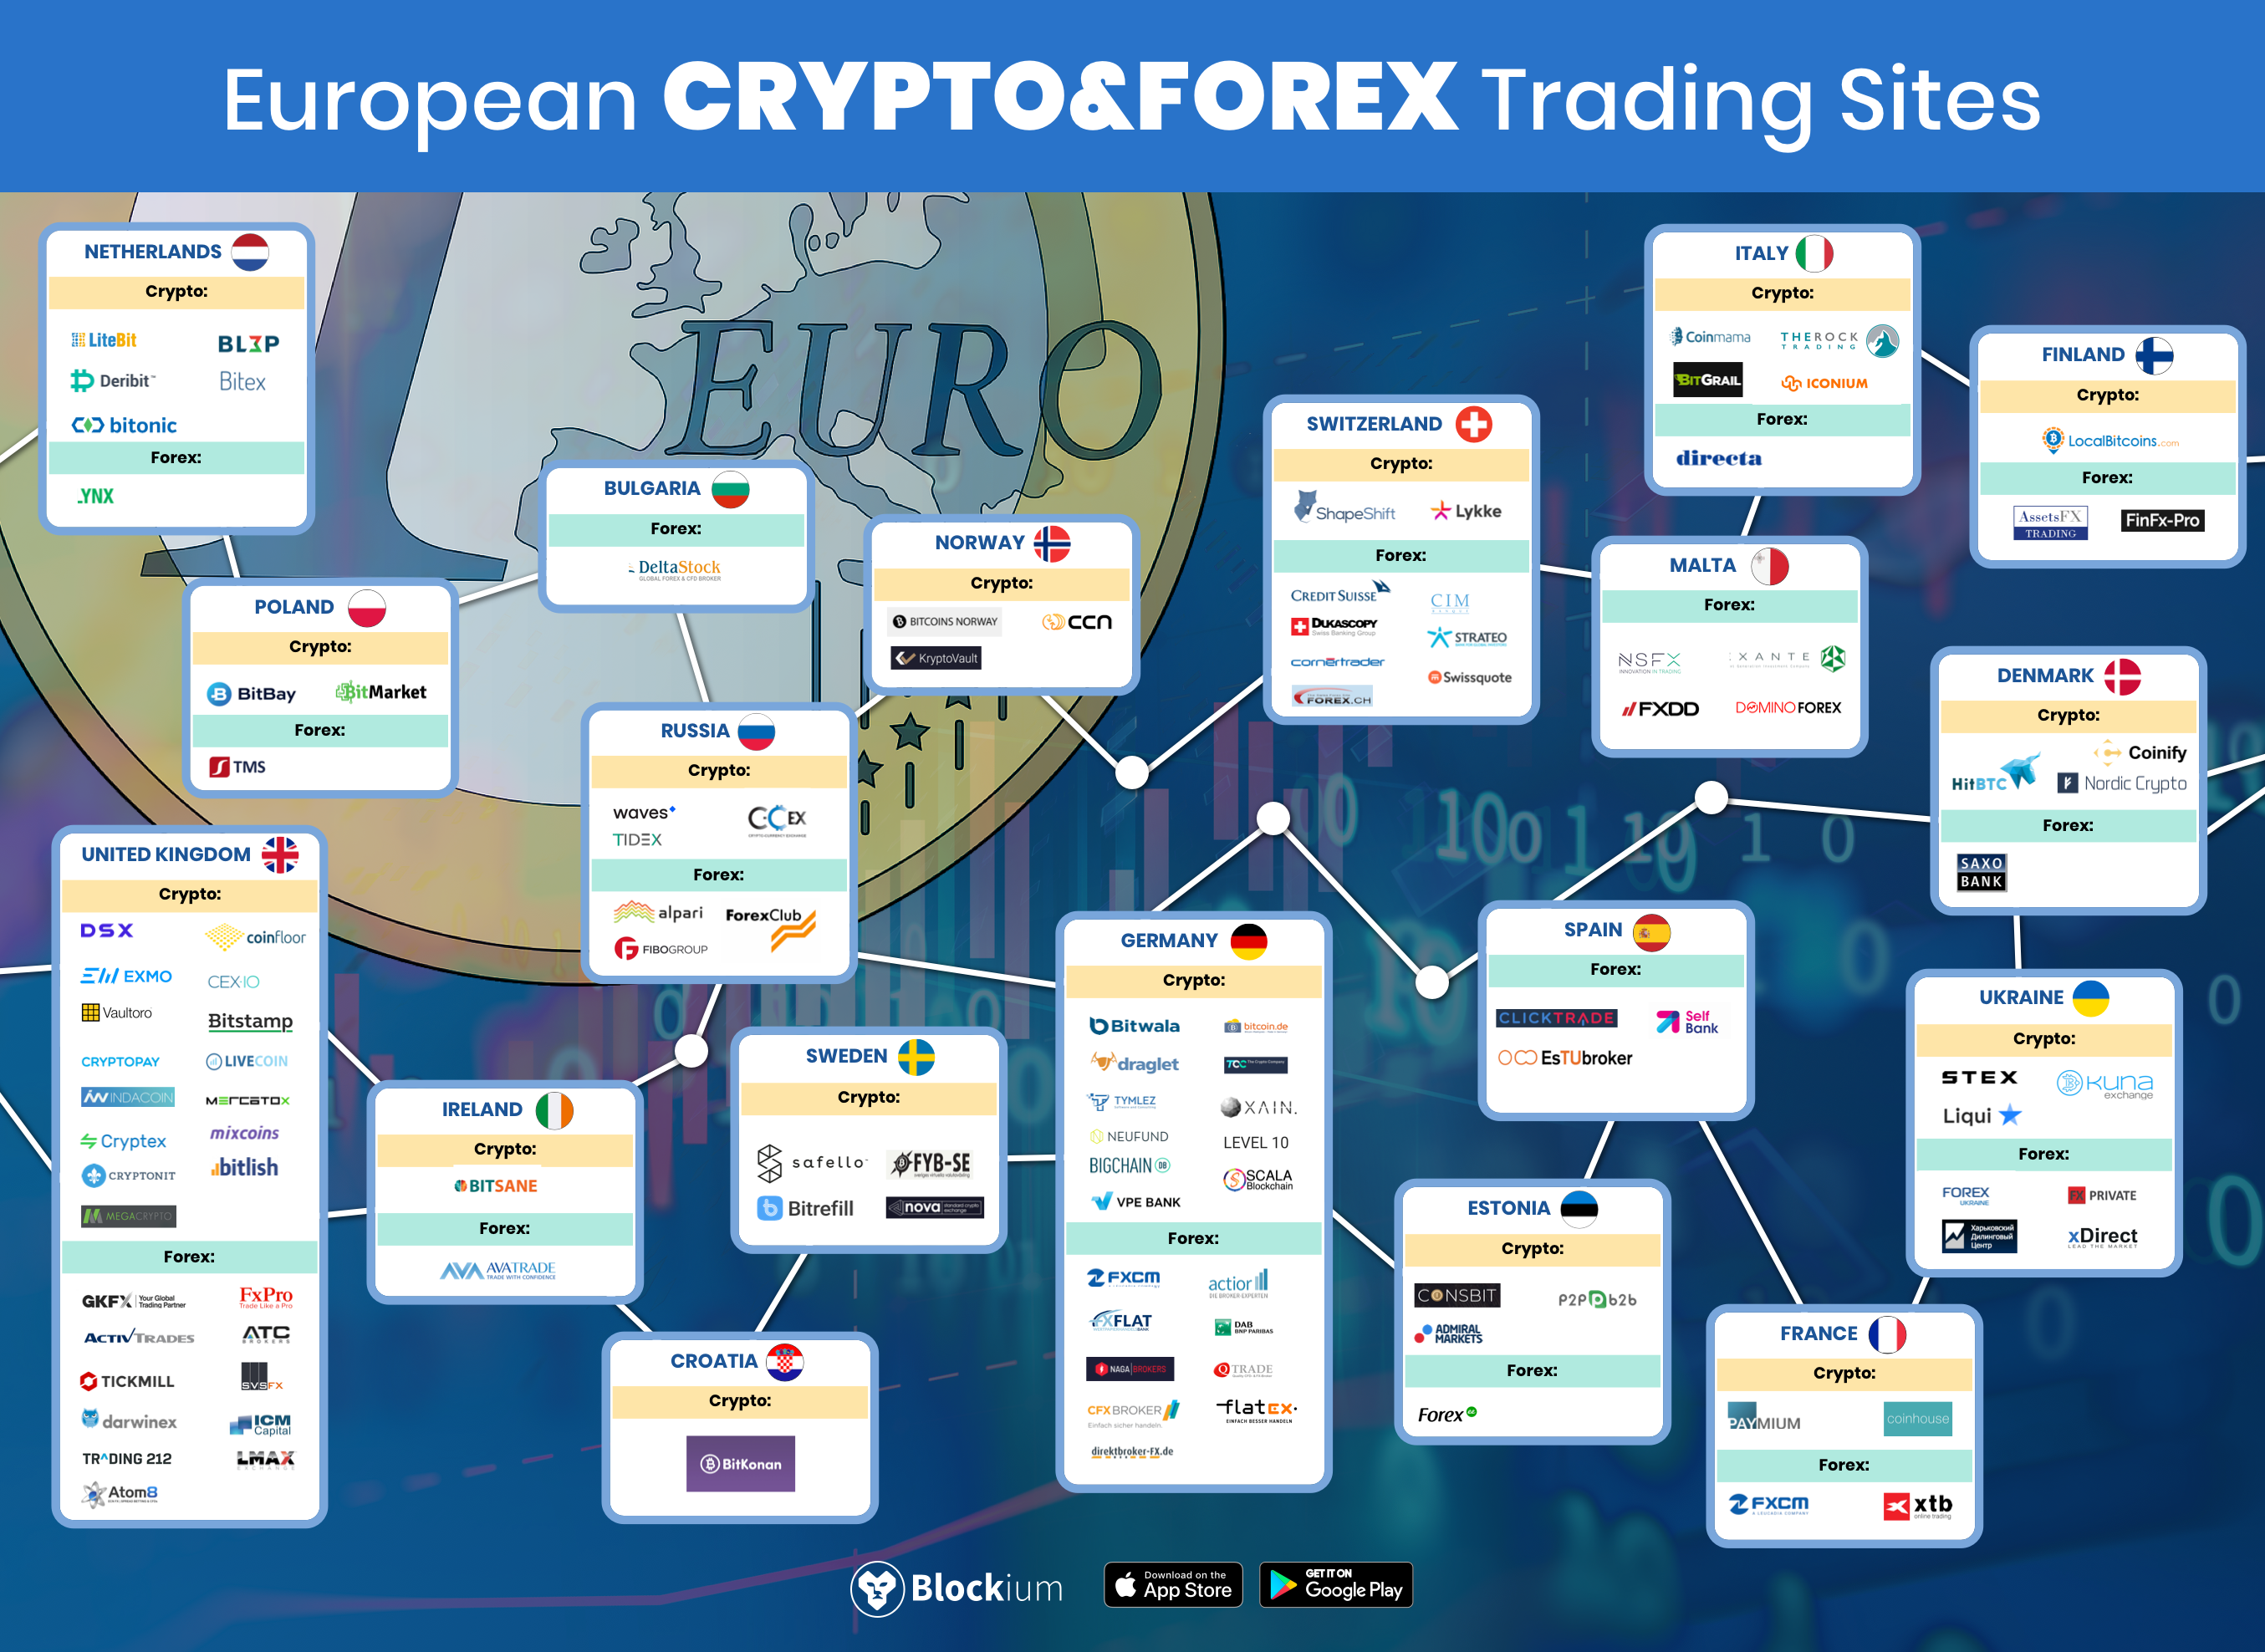 European Crypto And Forex Trading Sites